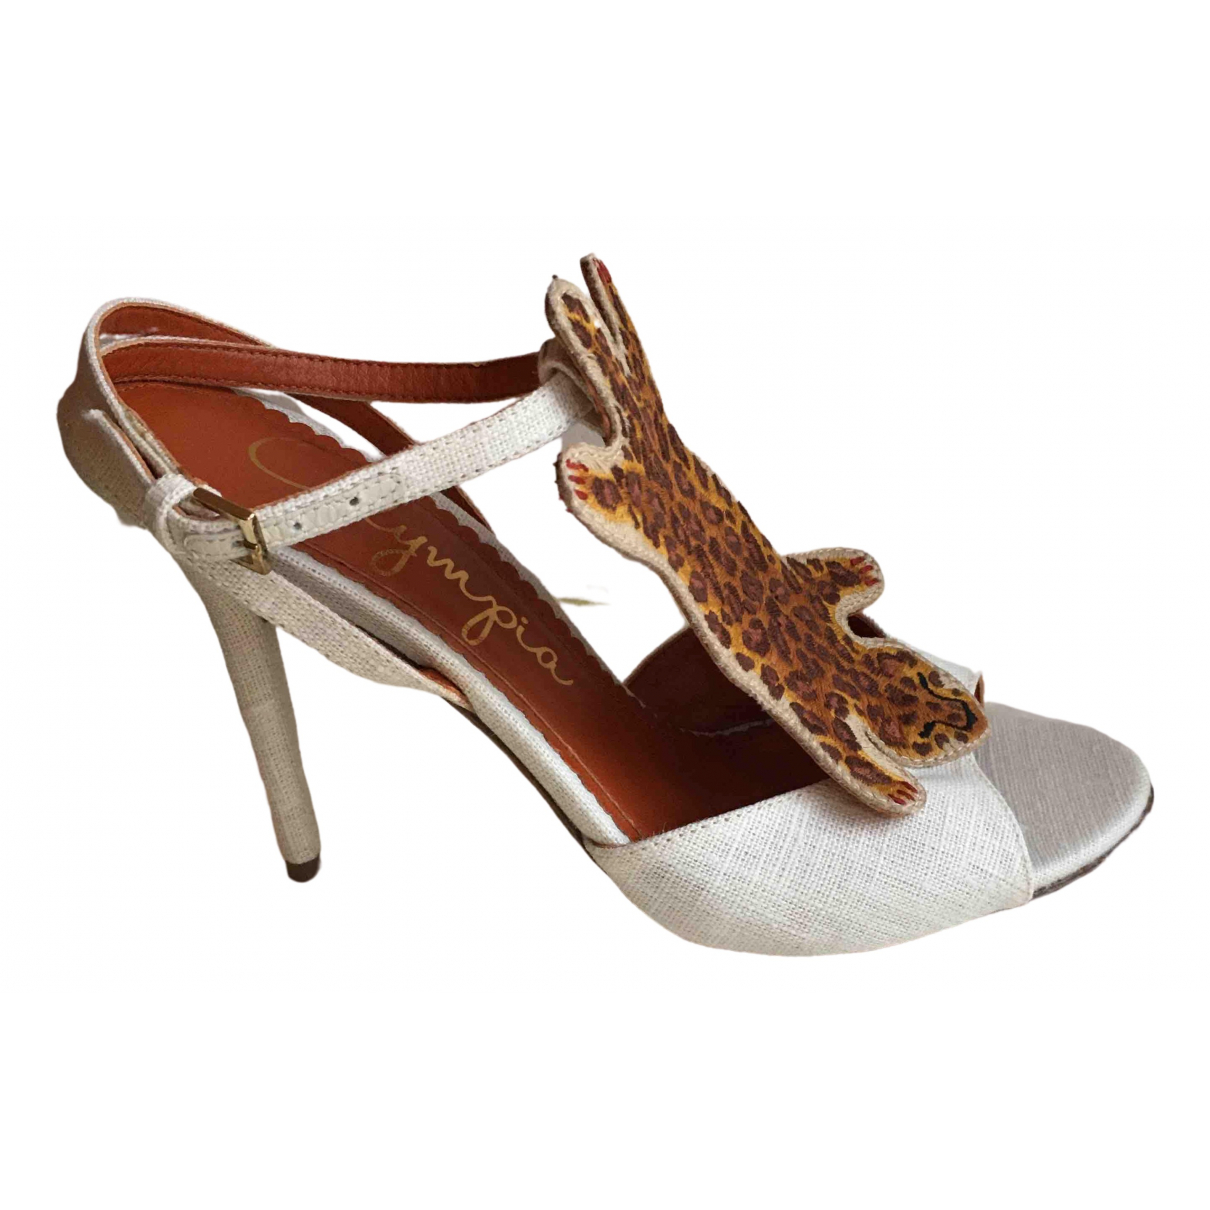 Charlotte Olympia \N Beige Leather Heels for Women 36 EU